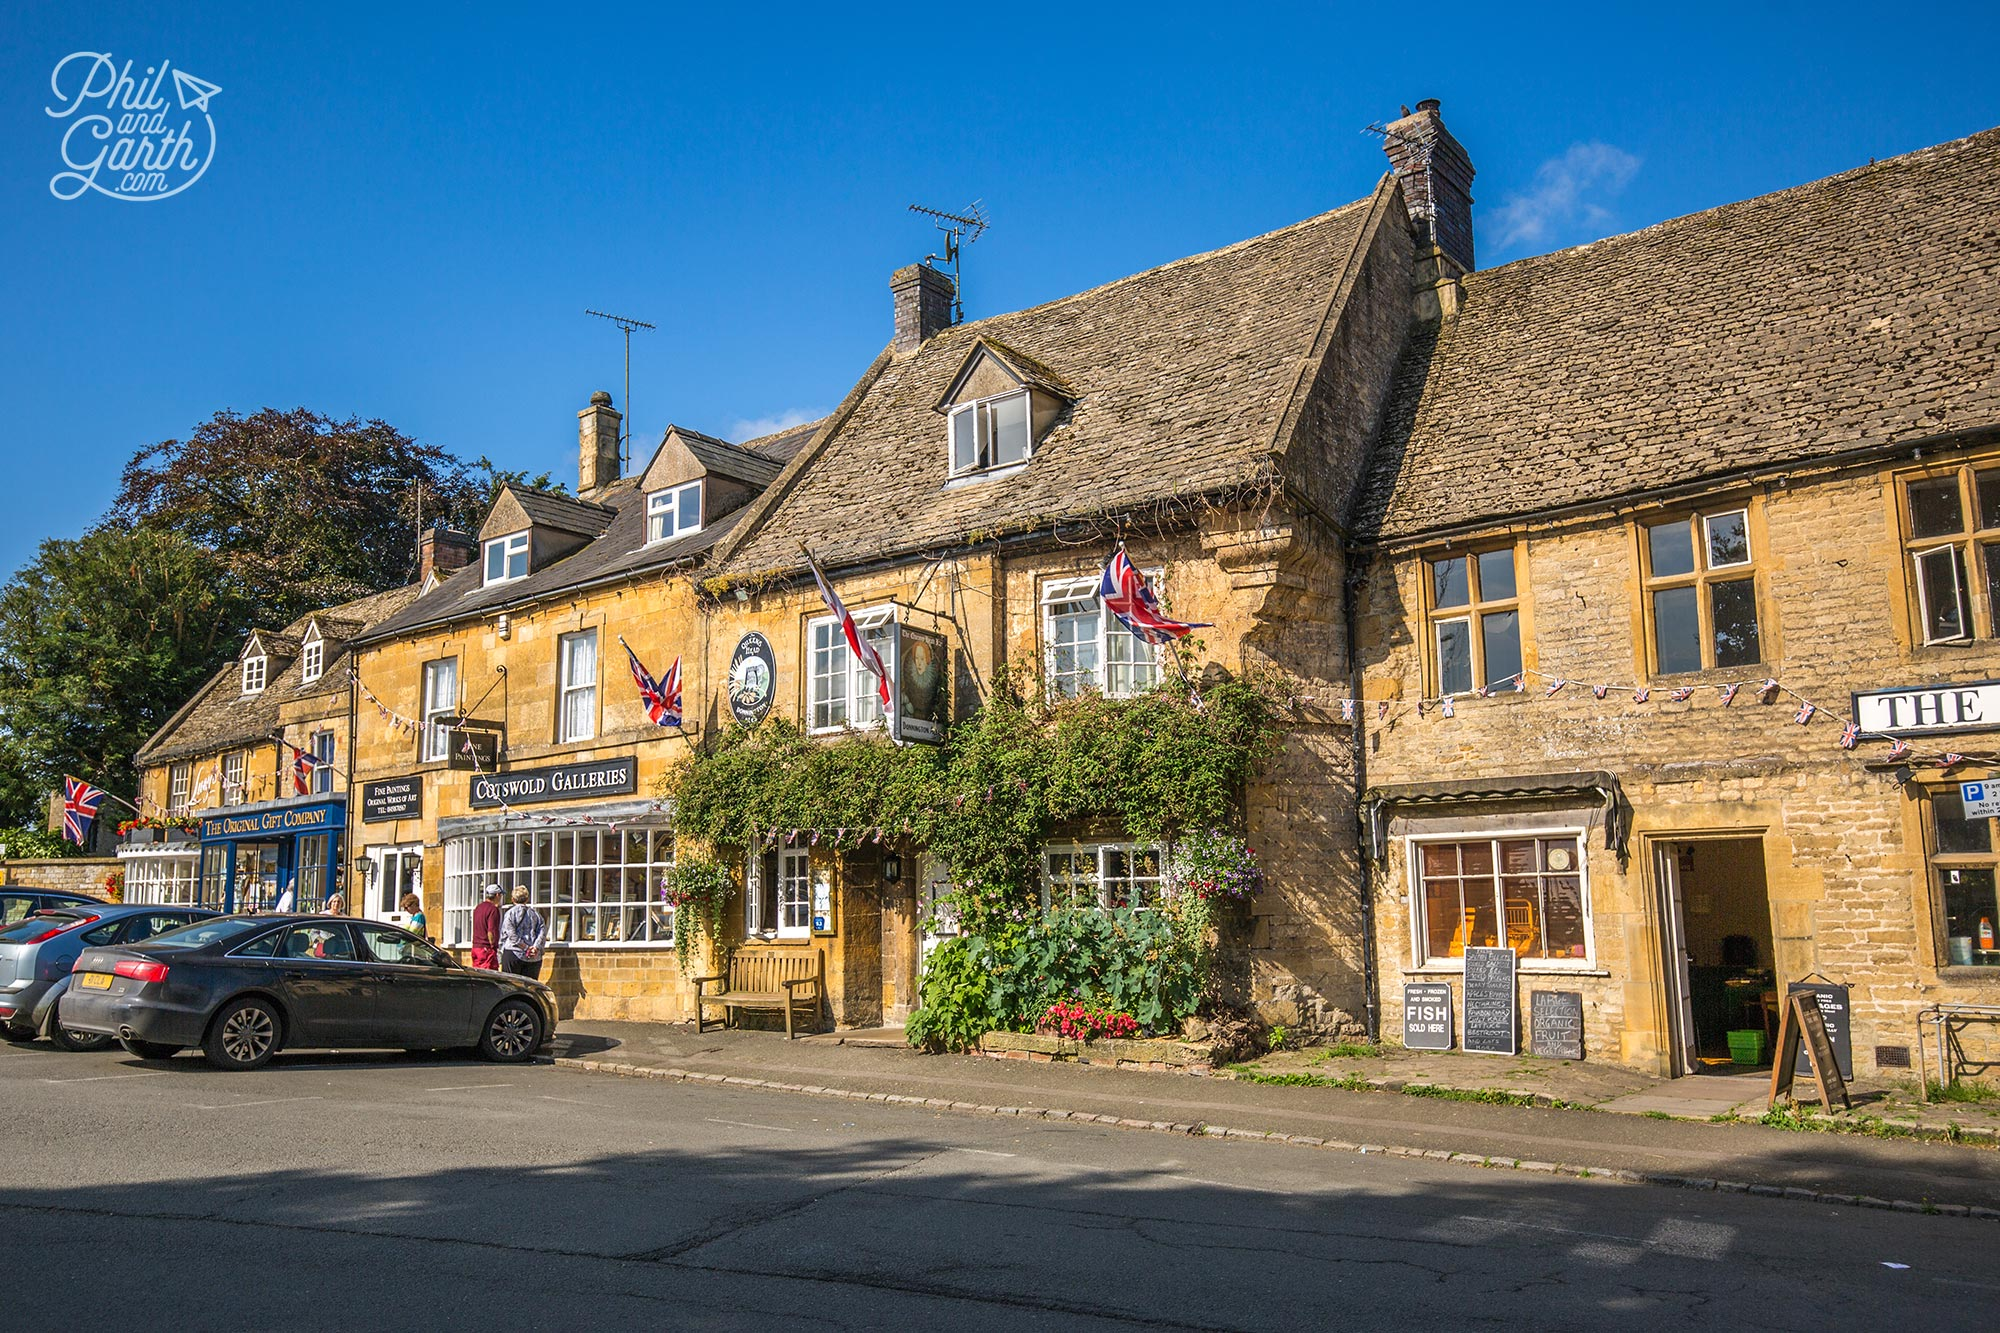 Stow-on-the-Wold tea and souvenir shops